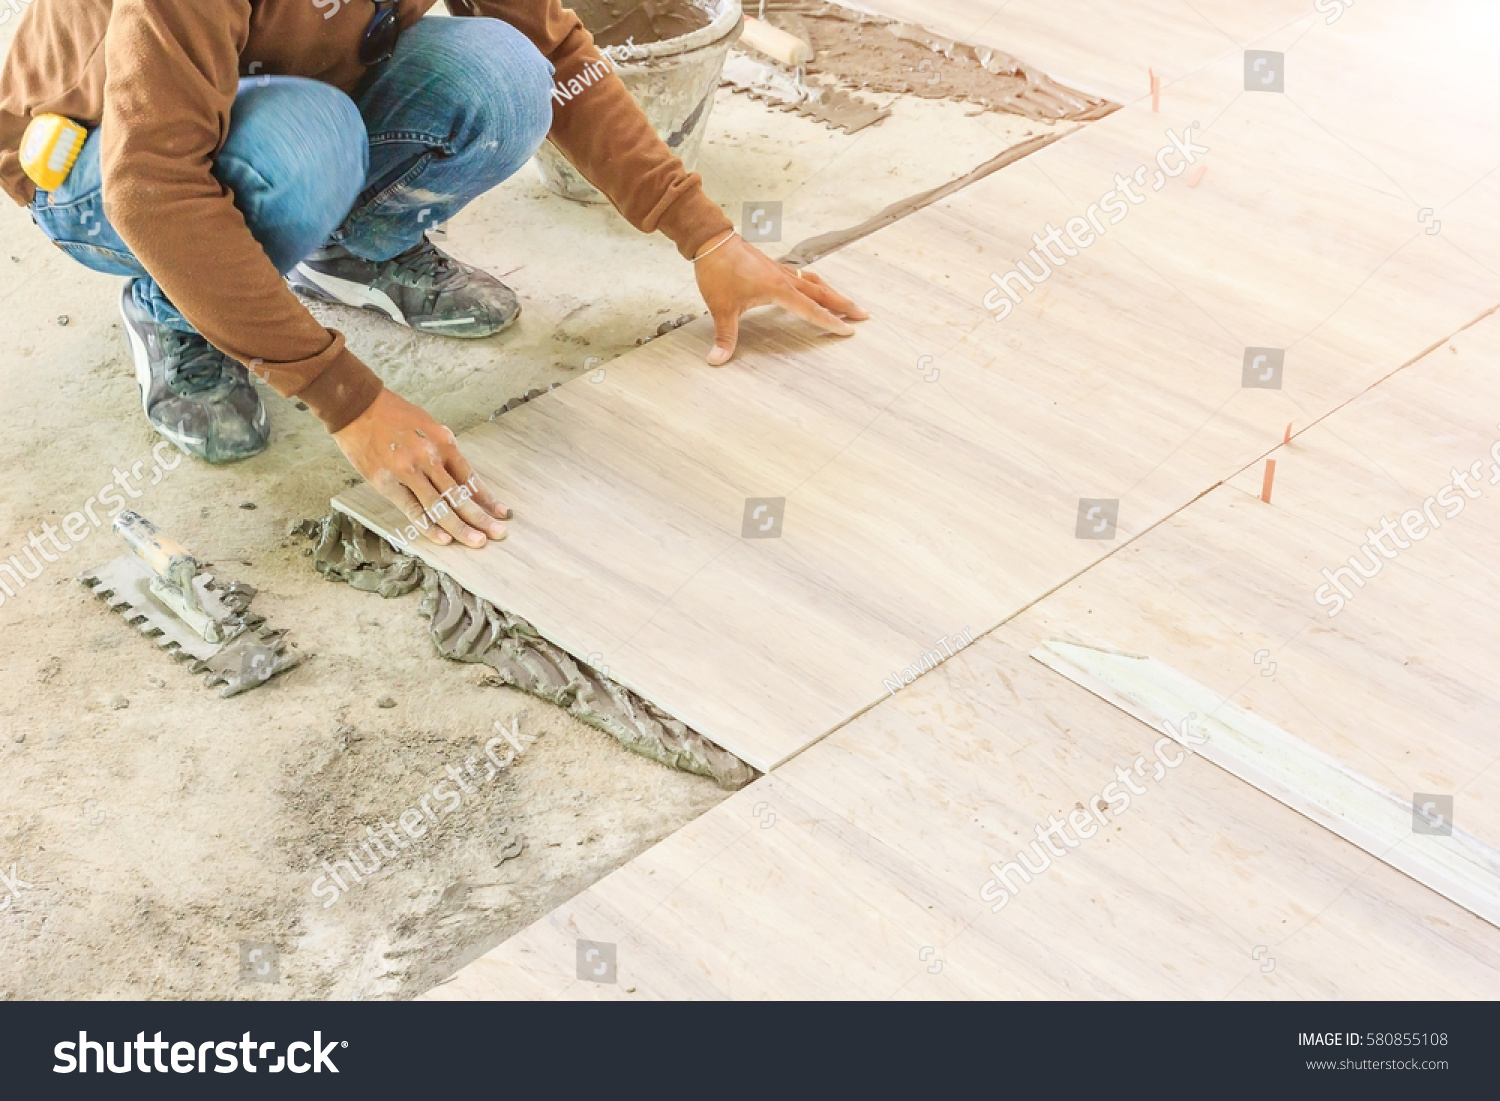 Floor Tile Workers : Home improvement renovation construction worker tiler